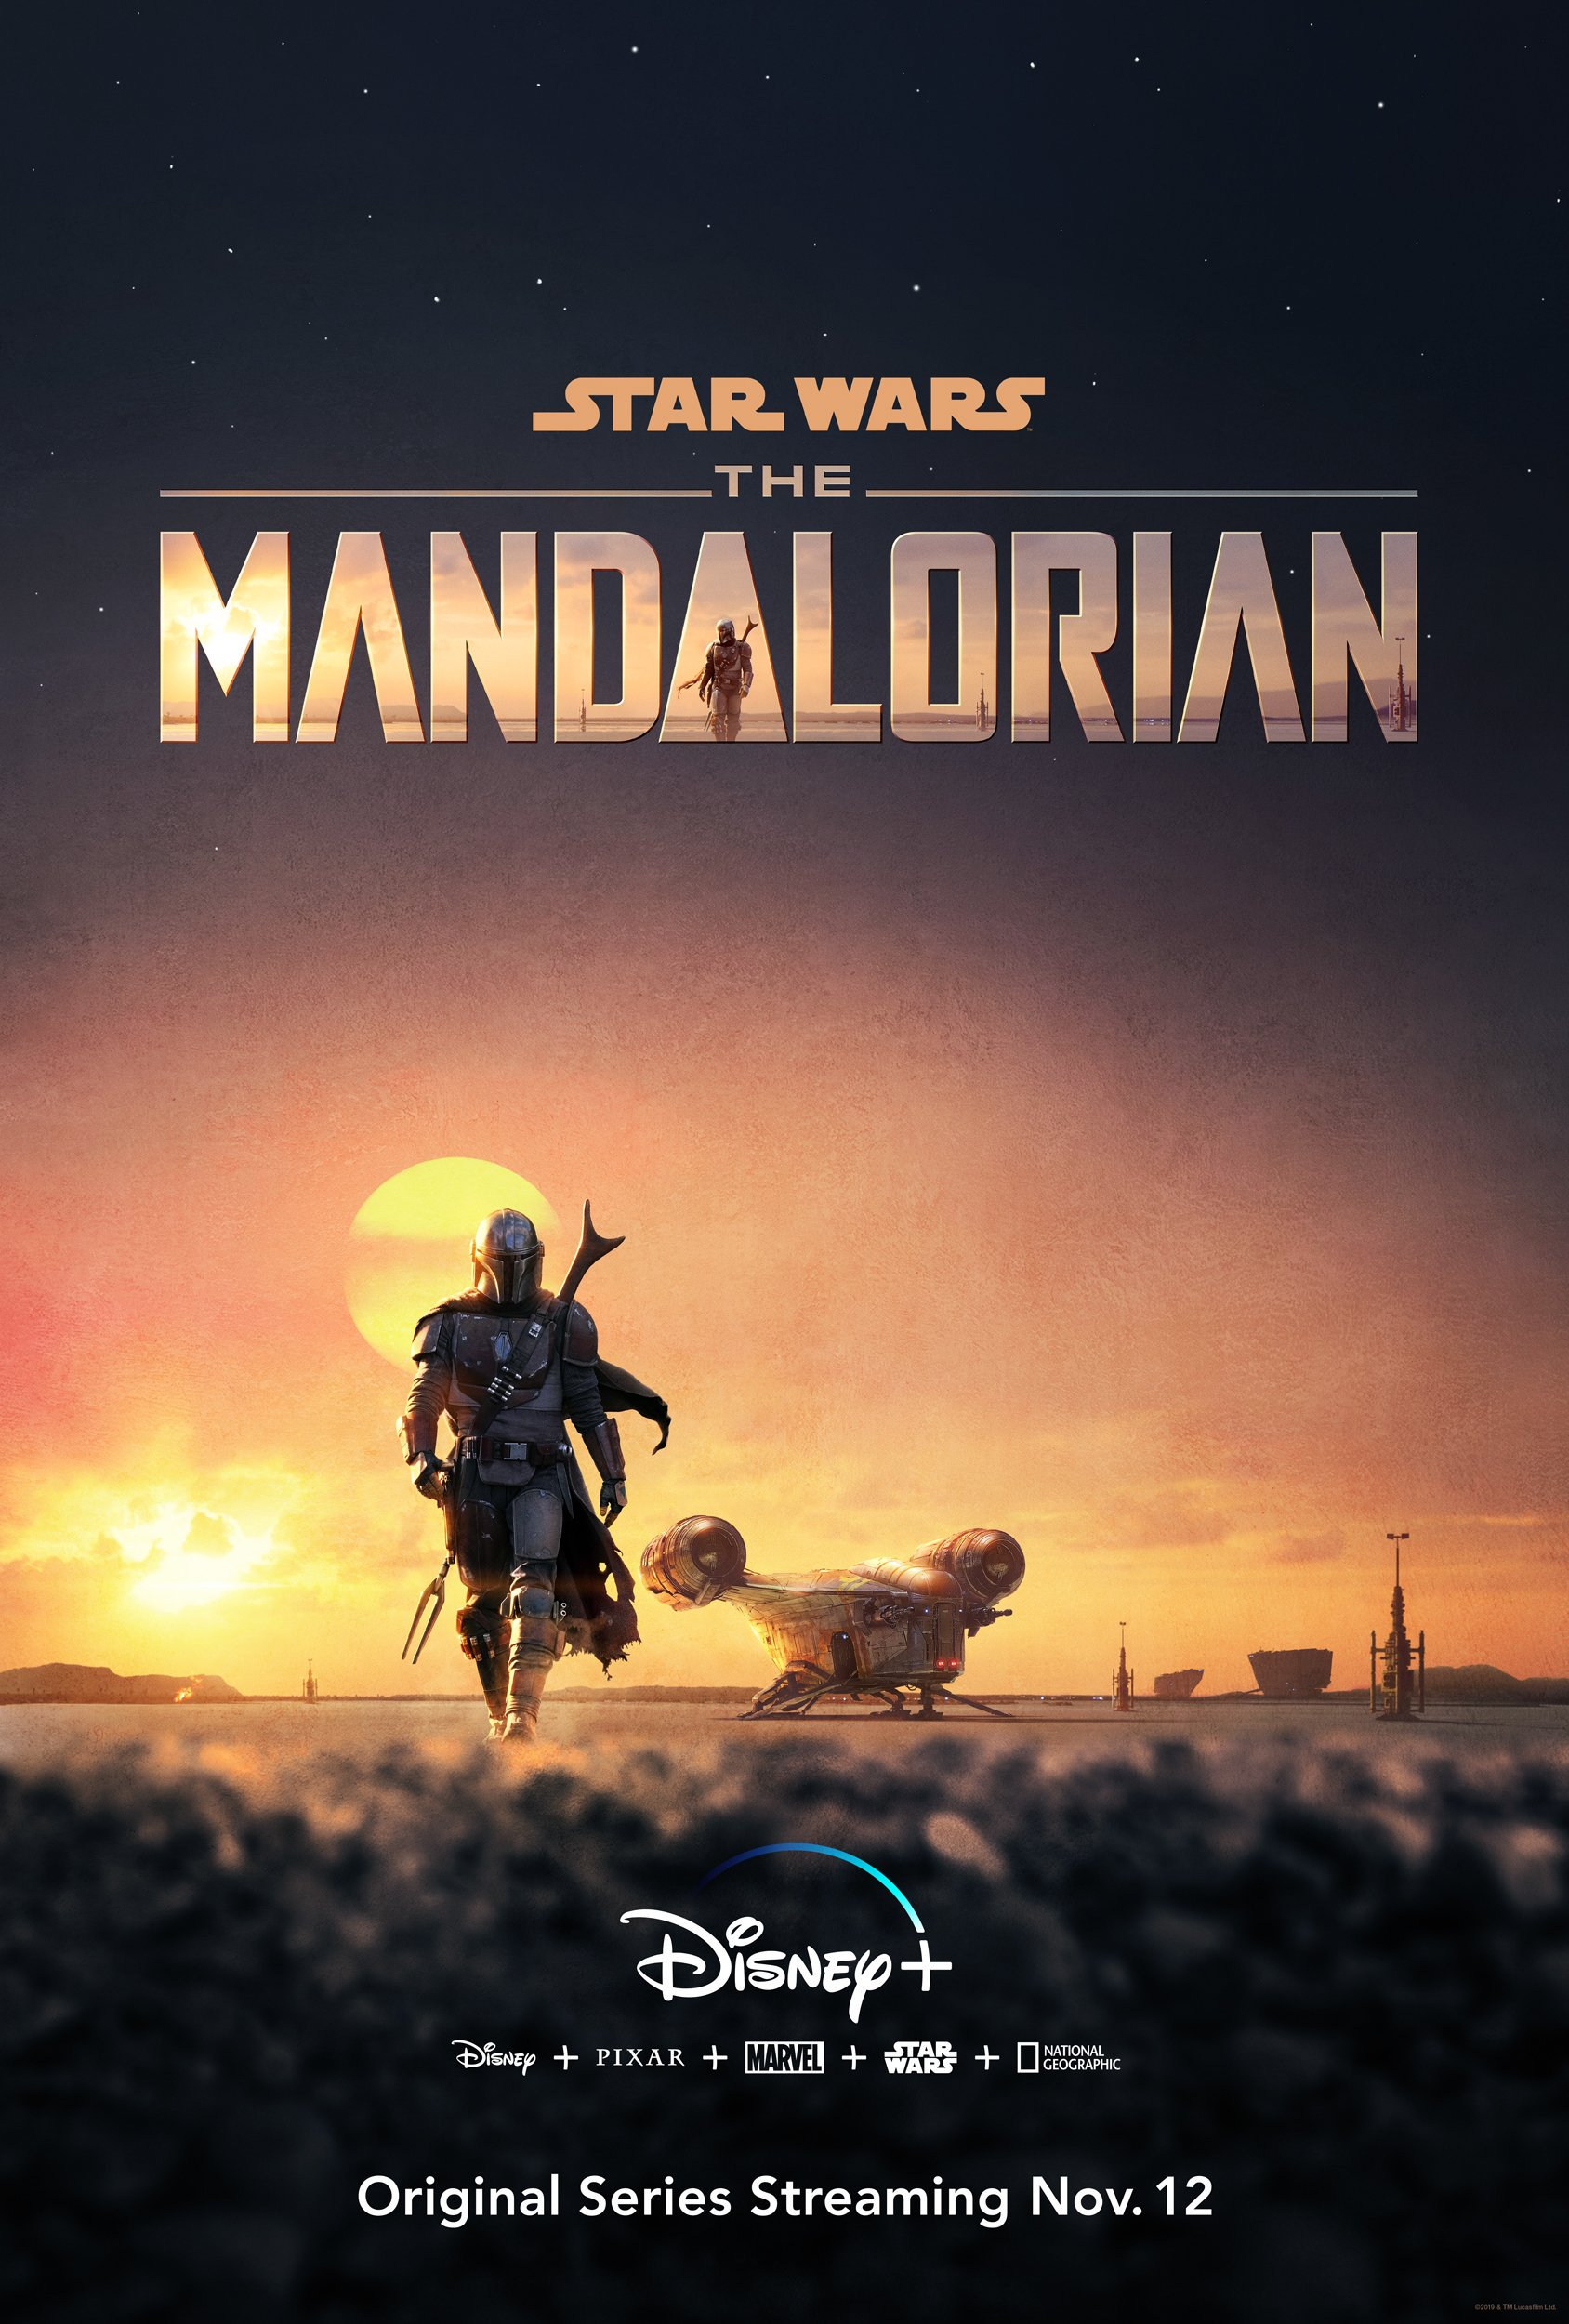 The Mandalorian Disney plus poster